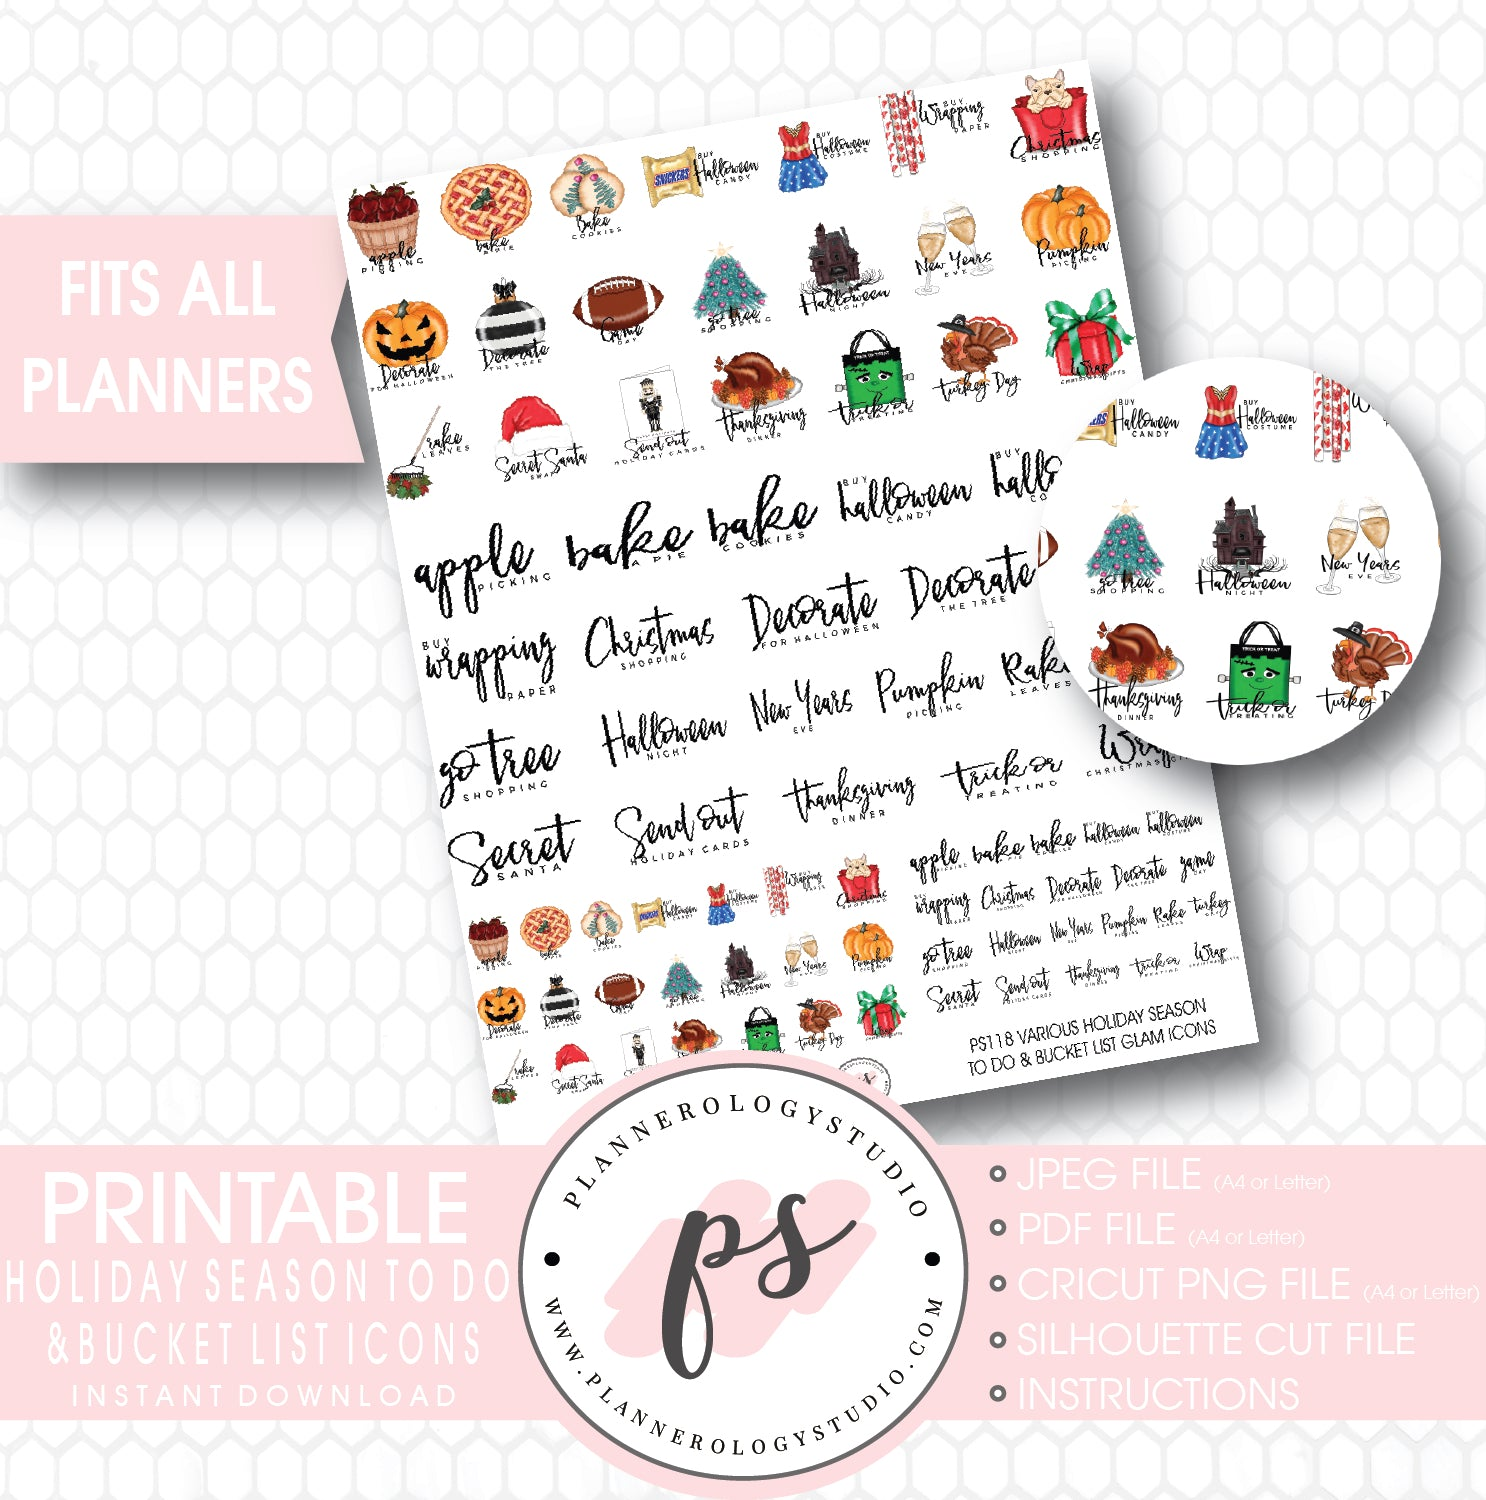 image relating to Thanksgiving Planner Printable named Trip Period (Xmas, Halloween, Thanksgiving) Towards Do Bucket Listing Icons Printable Planner Stickers